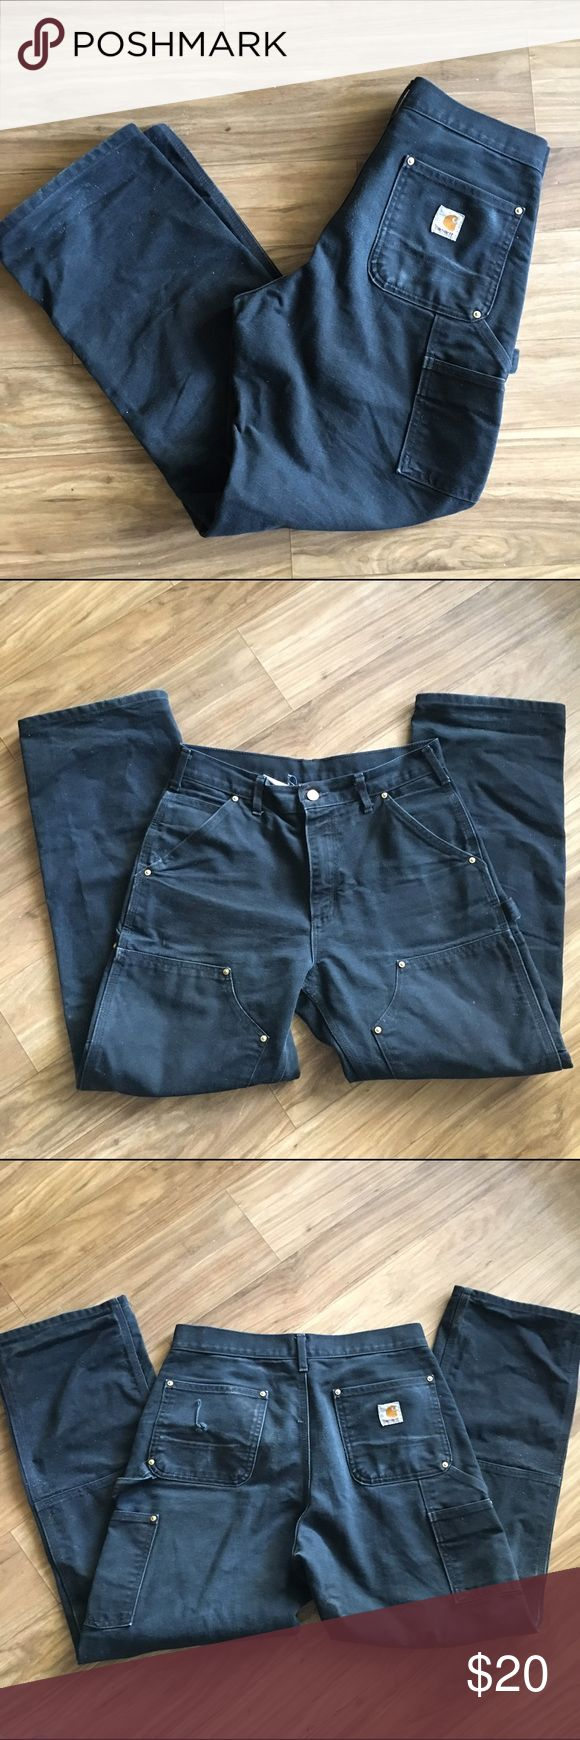 Carhartt work pants Faded black because my boyfriend used them for work but still have a ton of life left. Thick heavy denim. Small hole in back pocket. Original fit. Carhartt Jeans